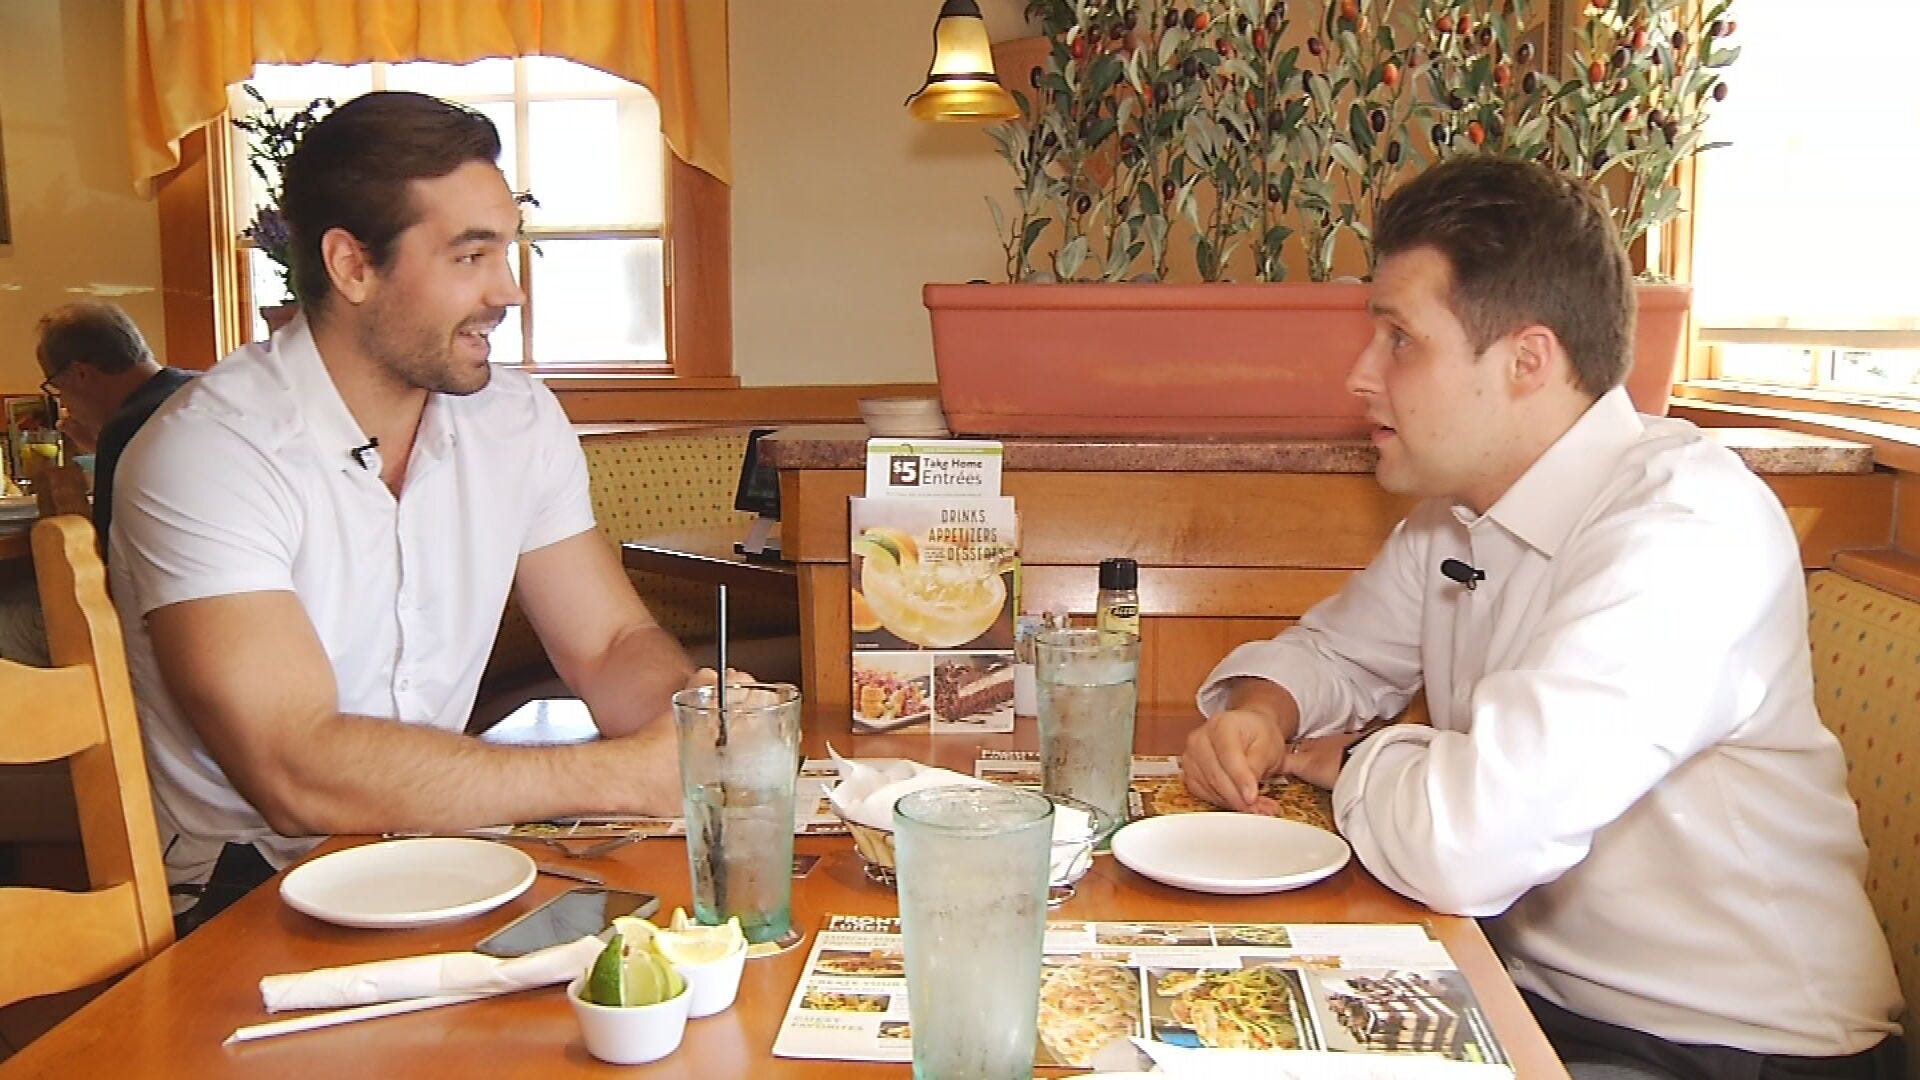 Tulsa Man Uses Olive Garden Pasta Pass Almost Daily